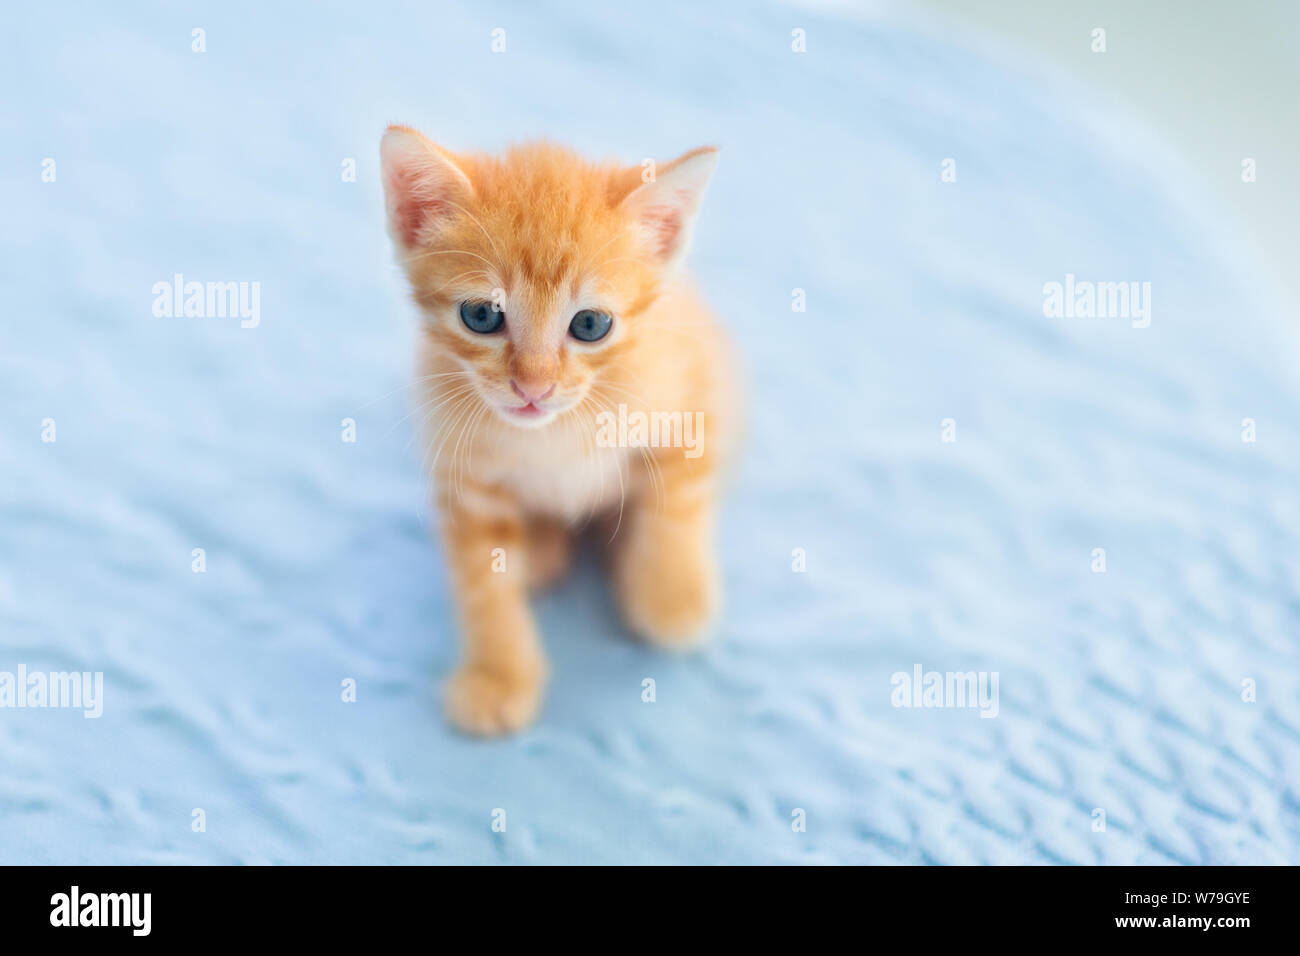 Baby Cat Ginger Kitten Playing On Couch With Knitted Blanket Domestic Animal Home Pet Young Cats Cute Funny Cats Play At Home Stock Photo Alamy